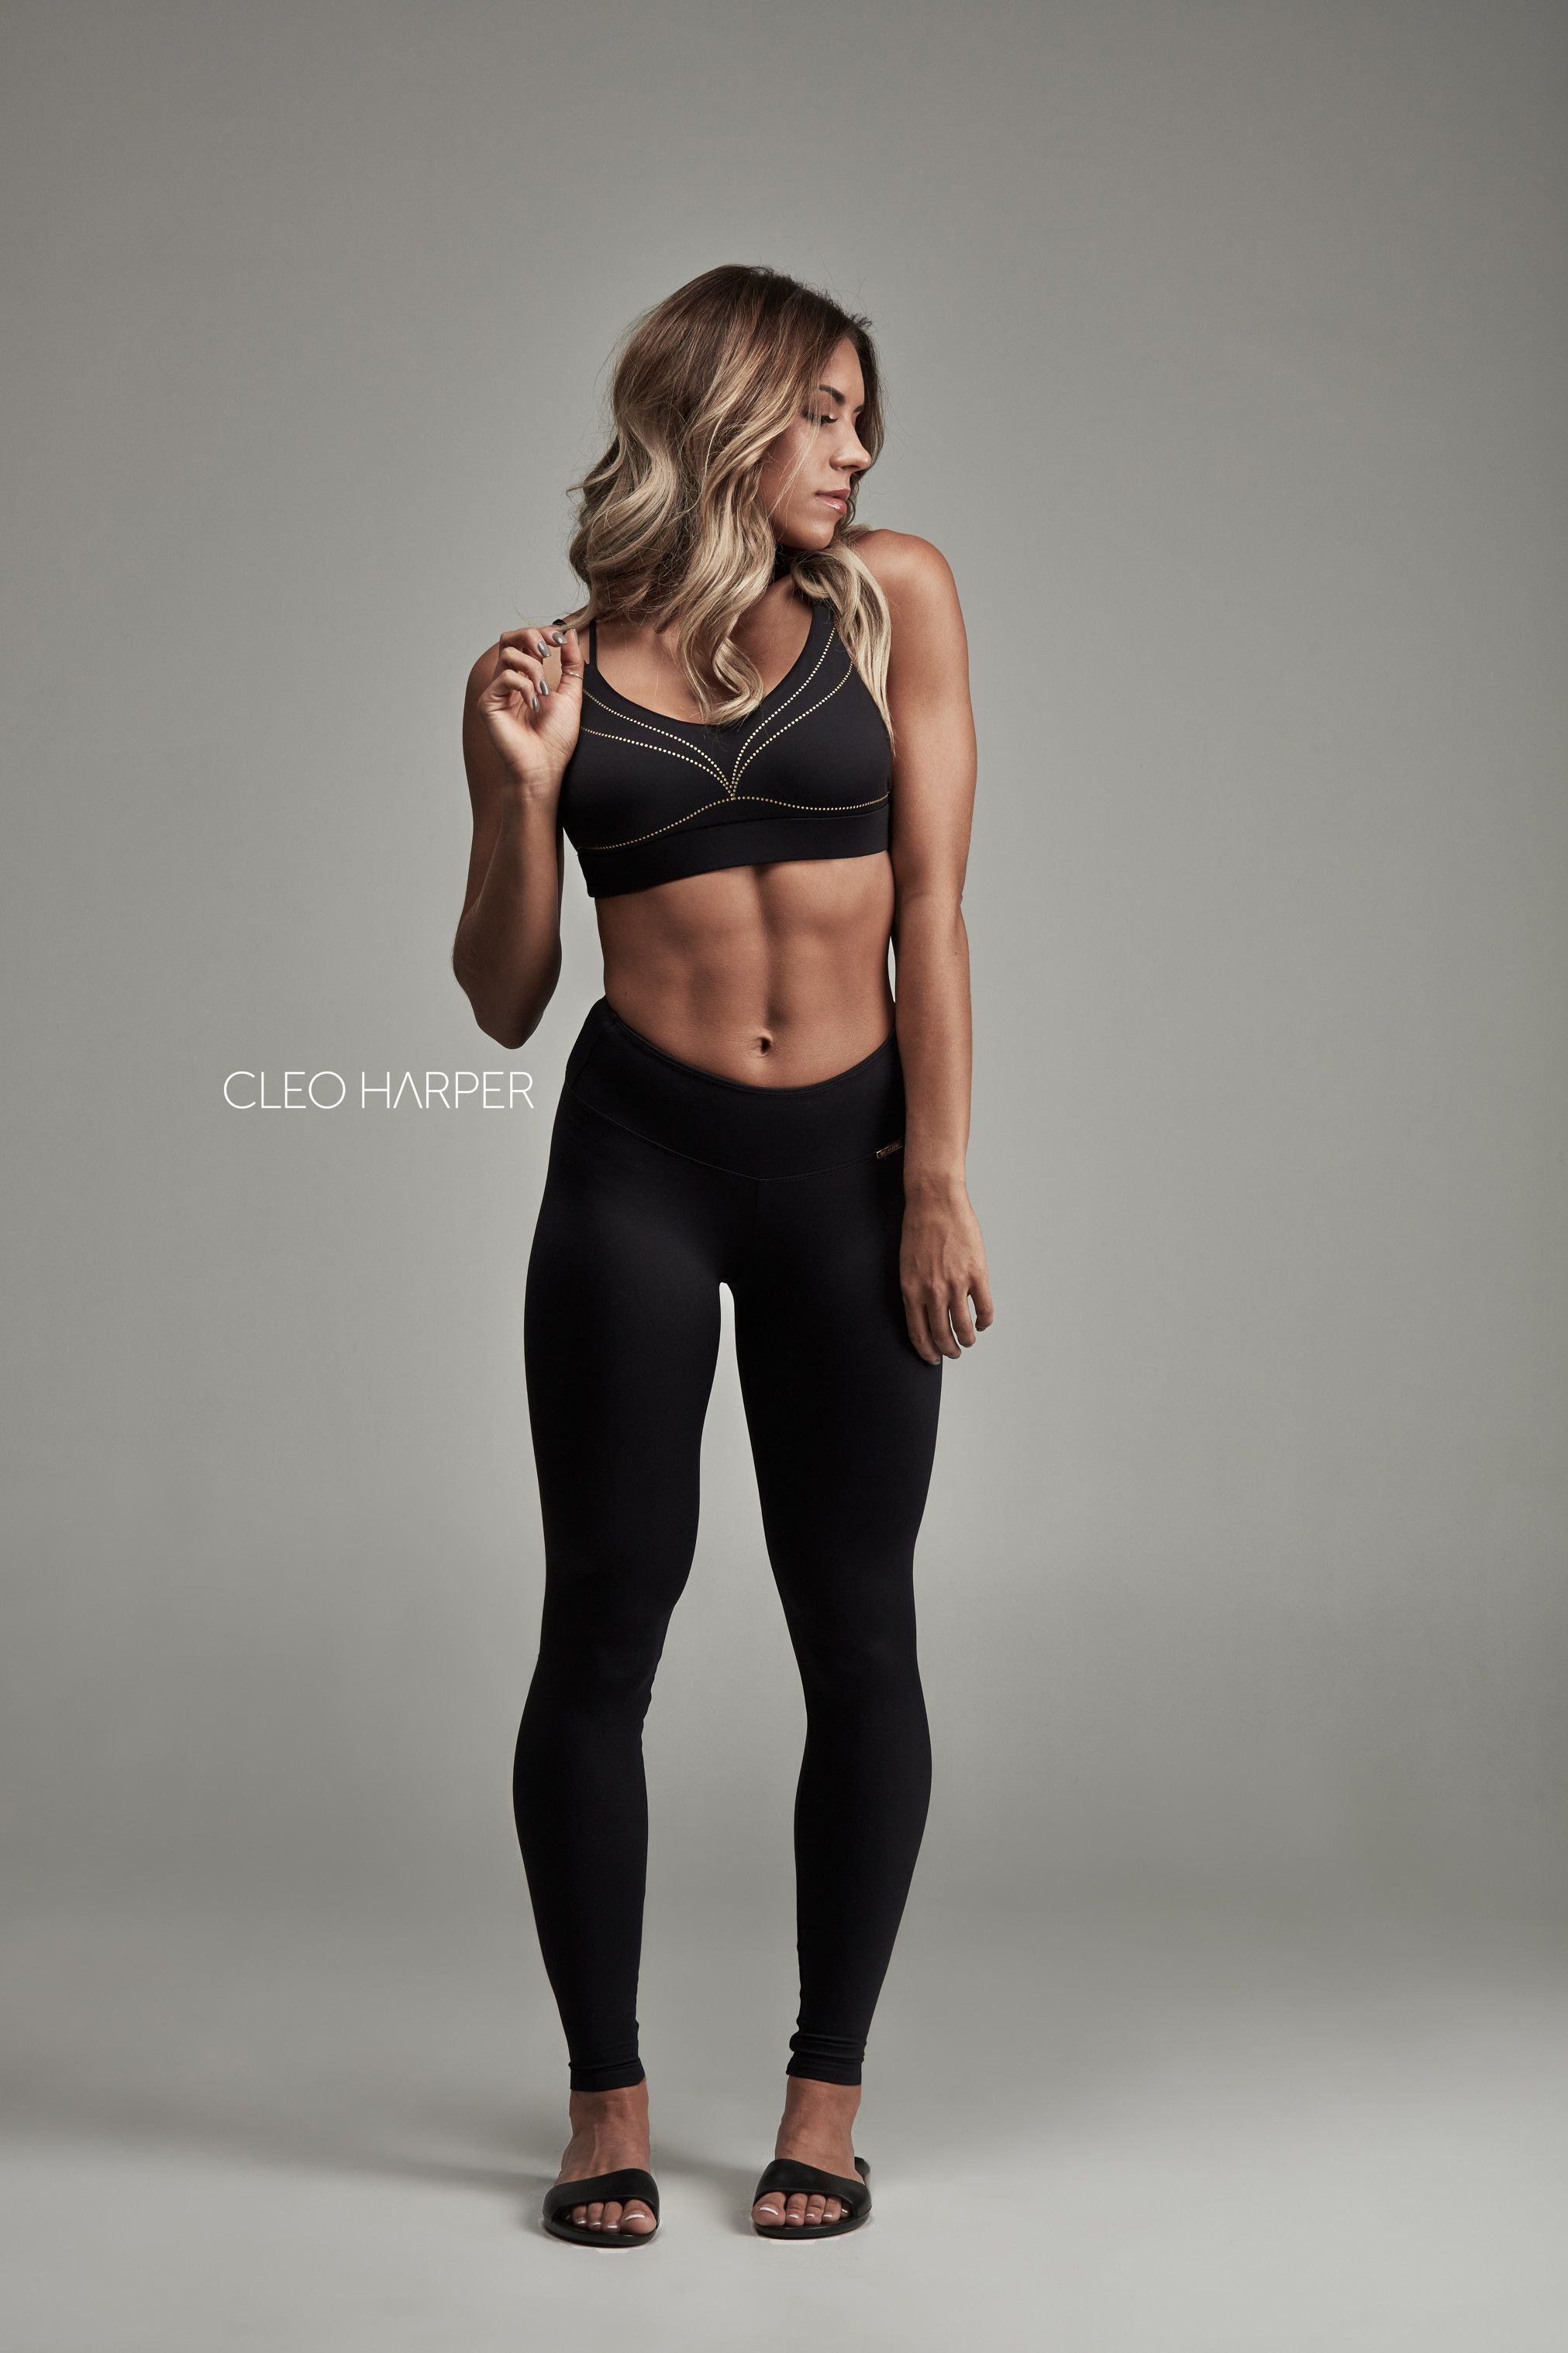 525170e5be CLEO HARPER ACTIVEWEAR